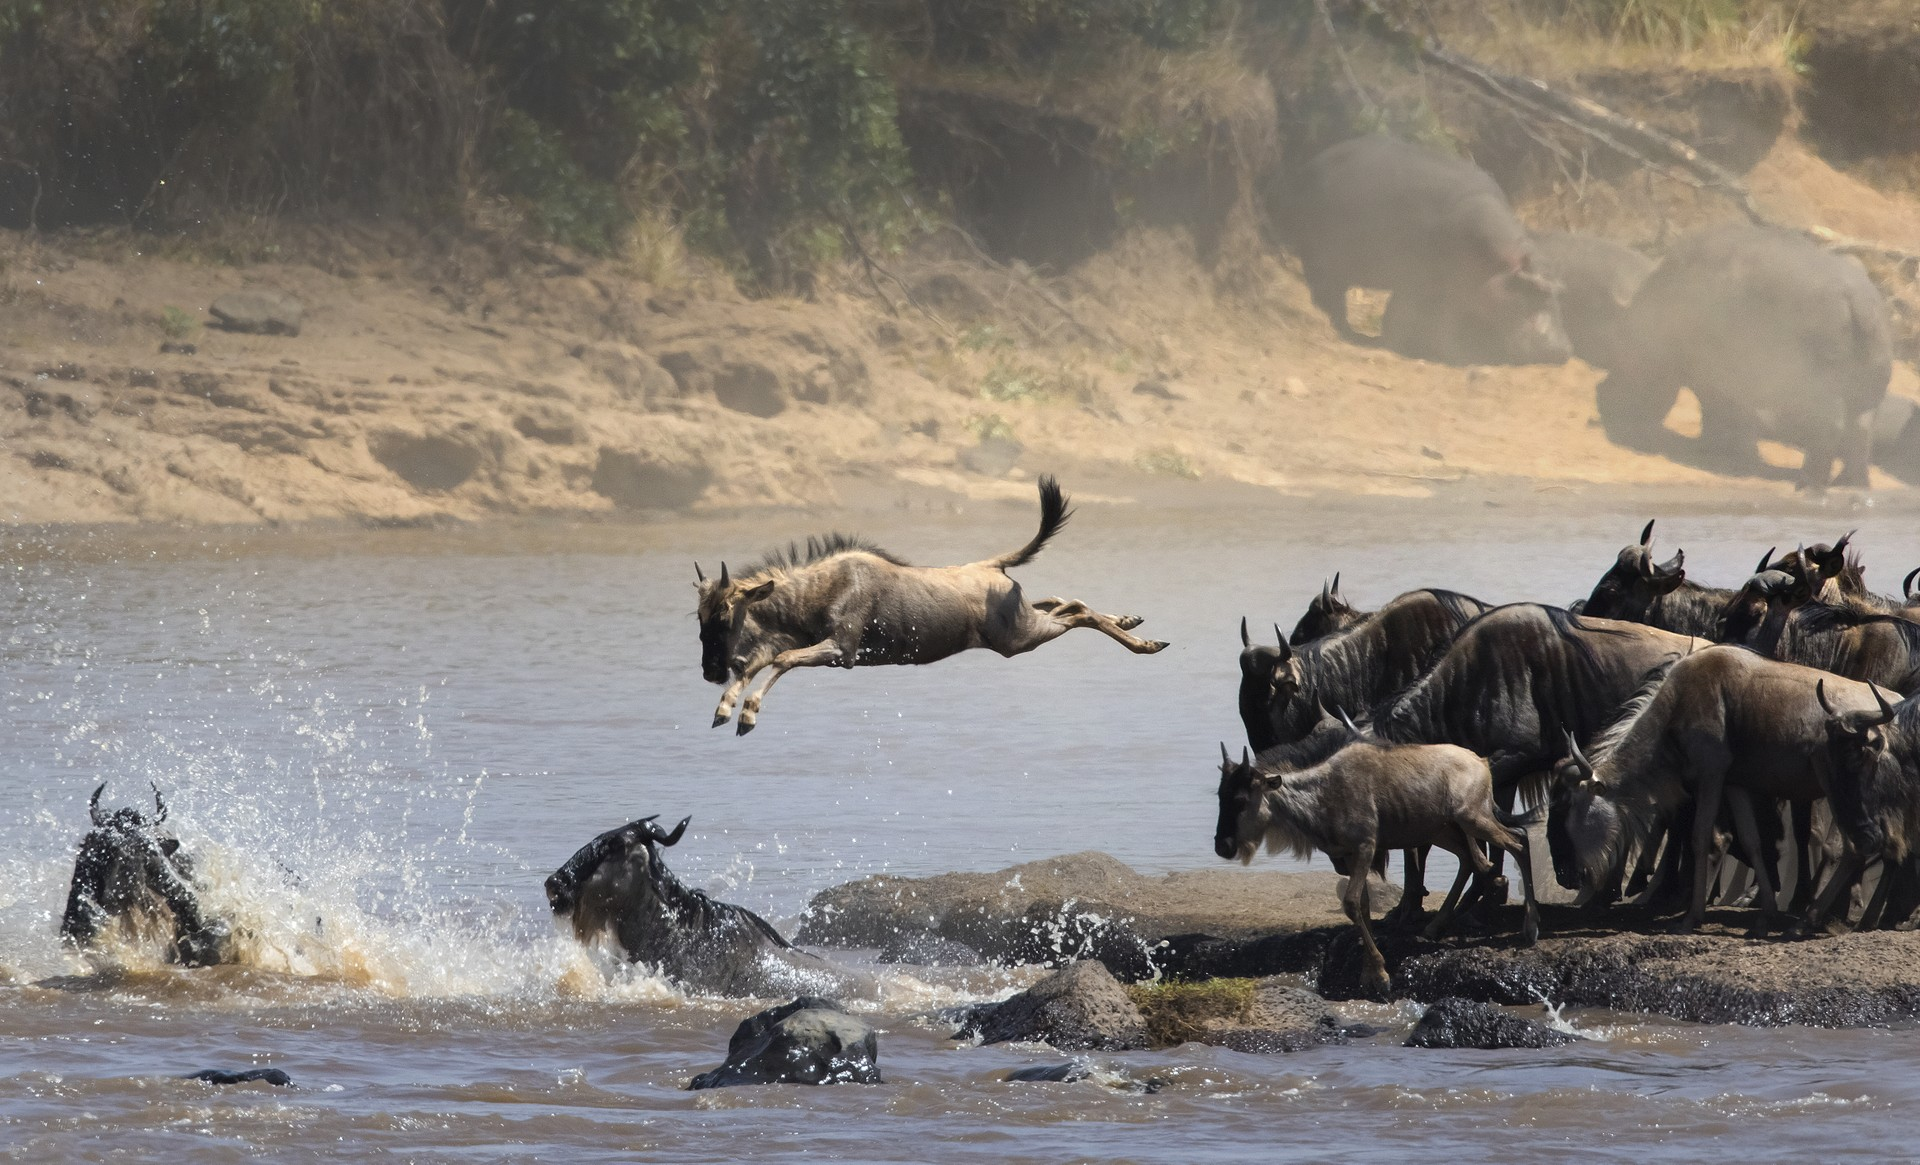 Wildebeest leaping into the Mara, Great Migration